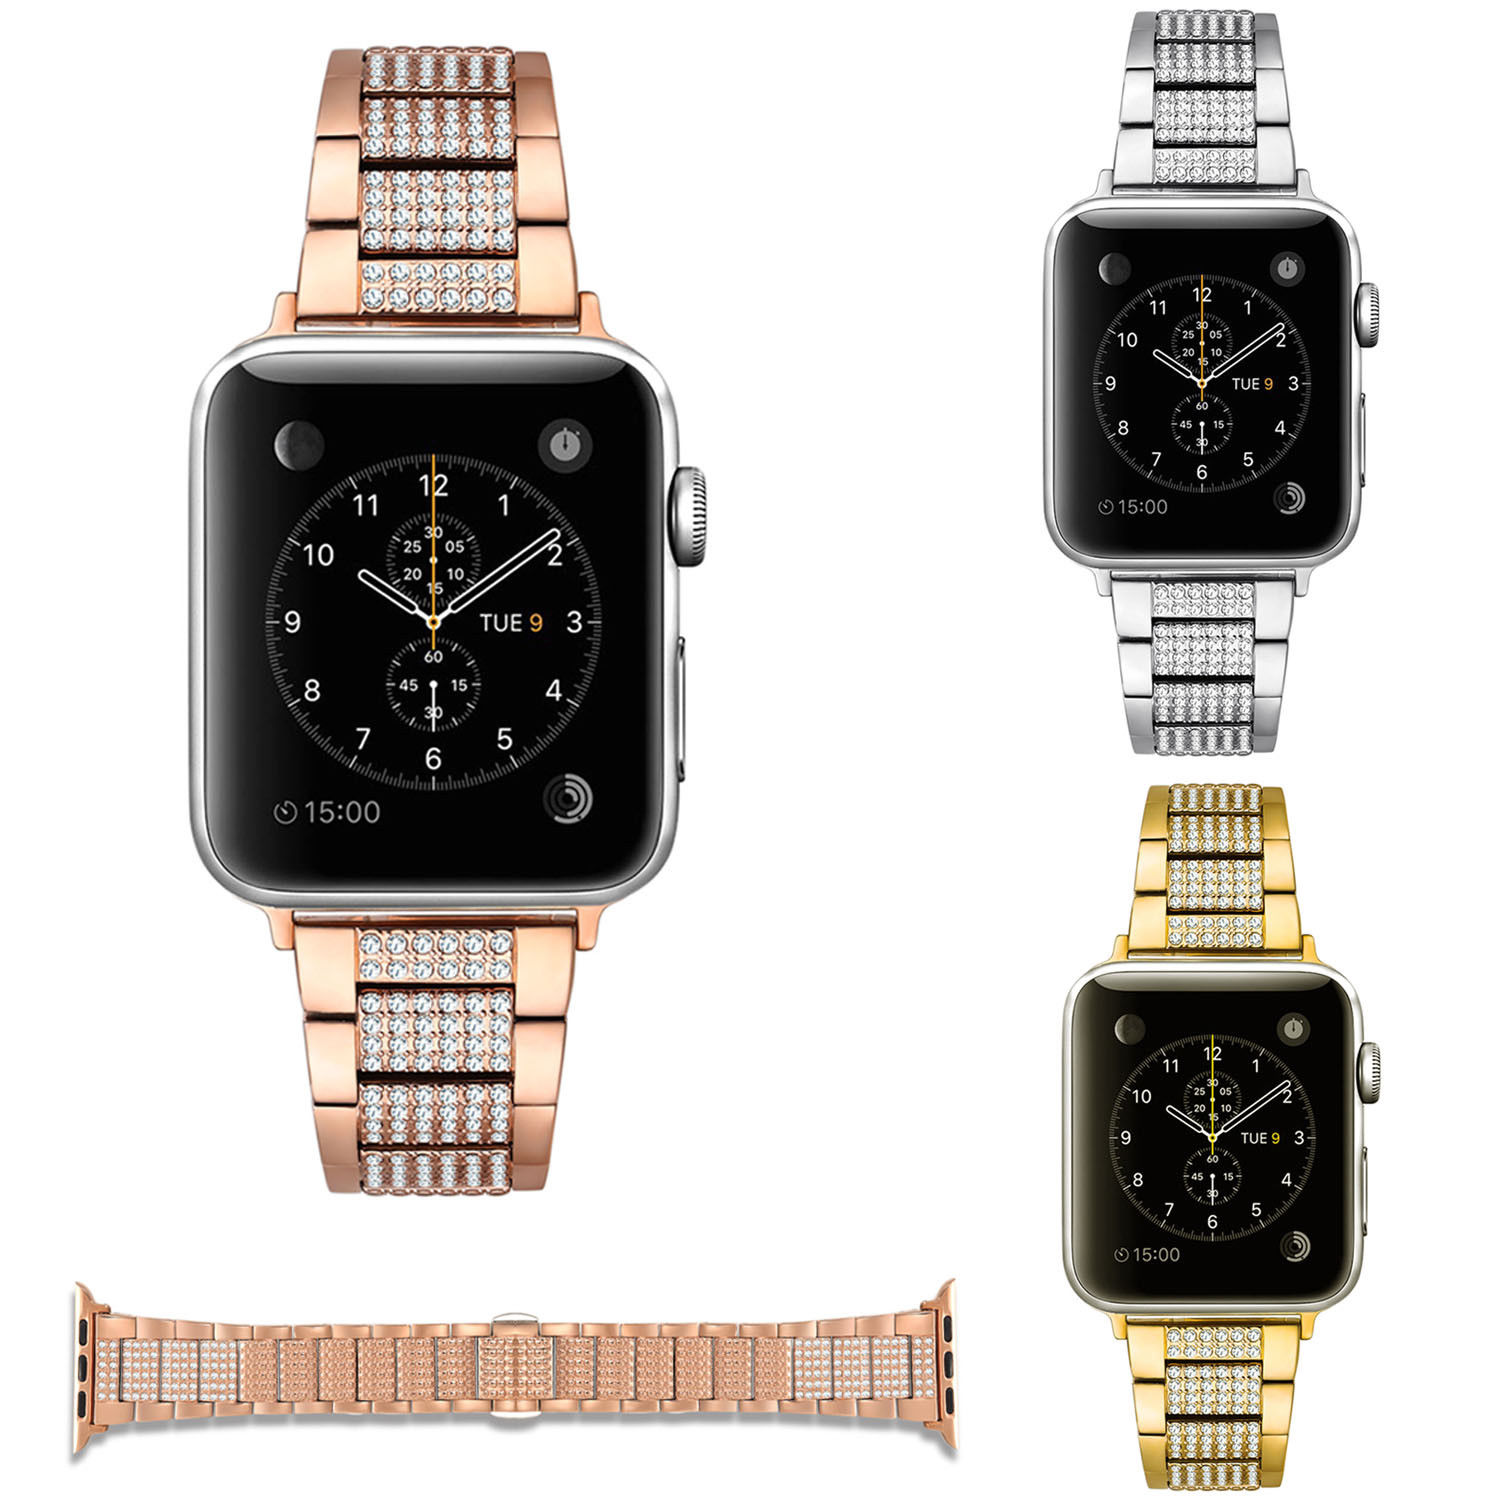 3Z Glitter Bling Rhinestones Link Bracelet for Apple Watch Series 3 2 1 Band Stainless Steel Shiny Strap for iWatch 42mm 38mm dahase bling rhinestone link bracelet for apple watch band stainless steel strap for iwatch 38mm 42mm series 1 2 3 belt